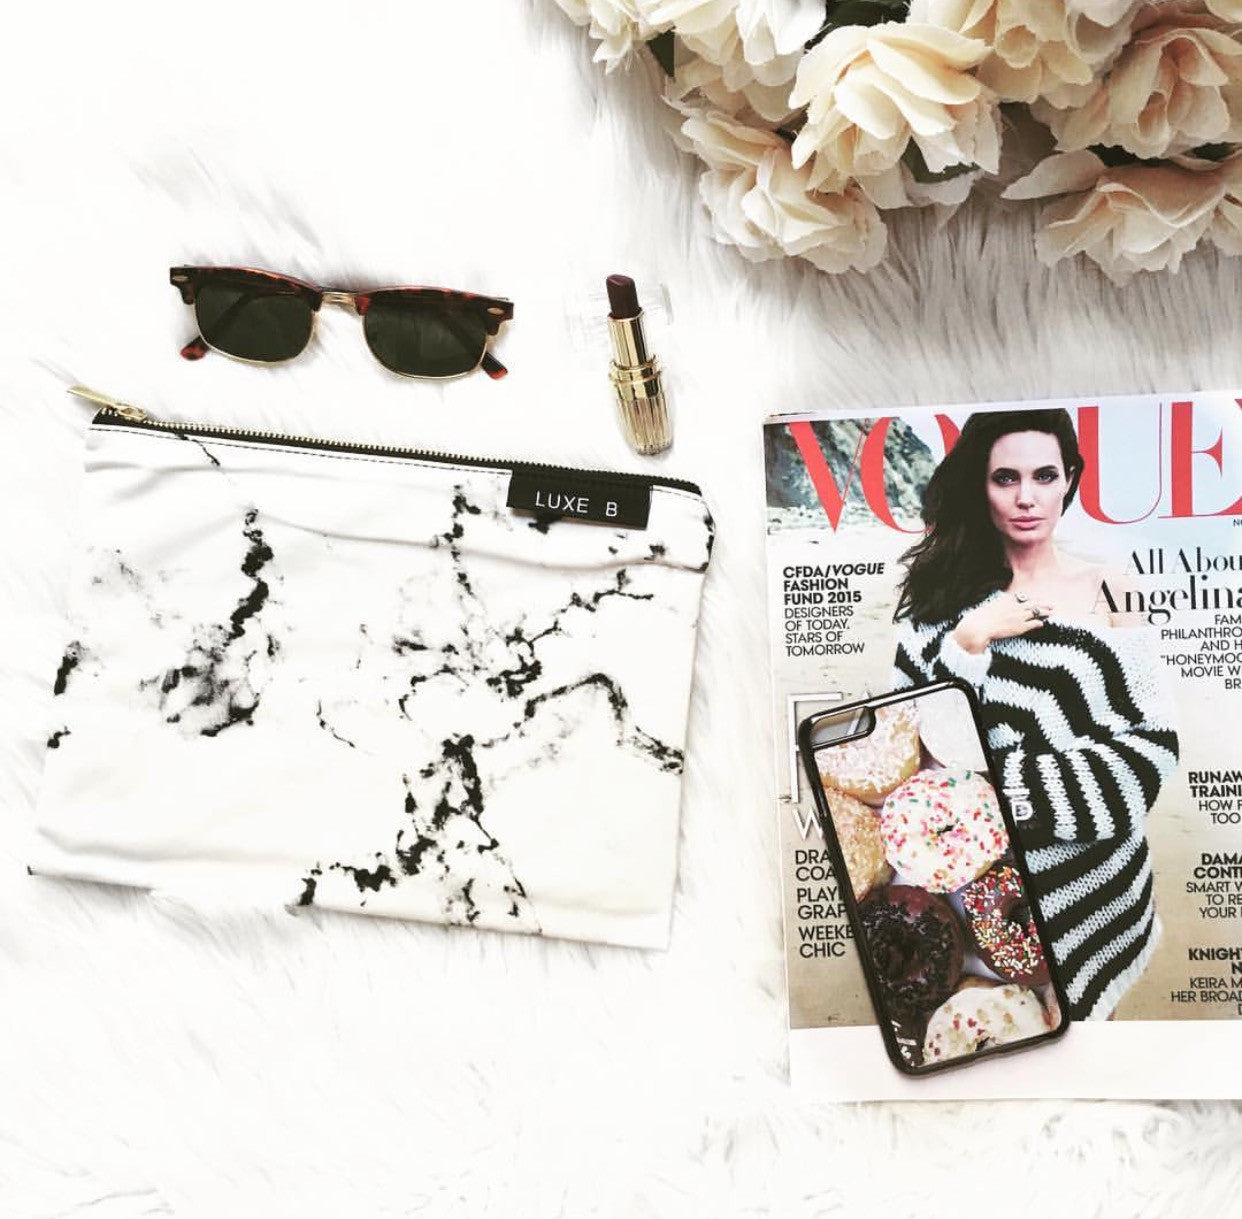 Marble makeup bag by luxe blogger